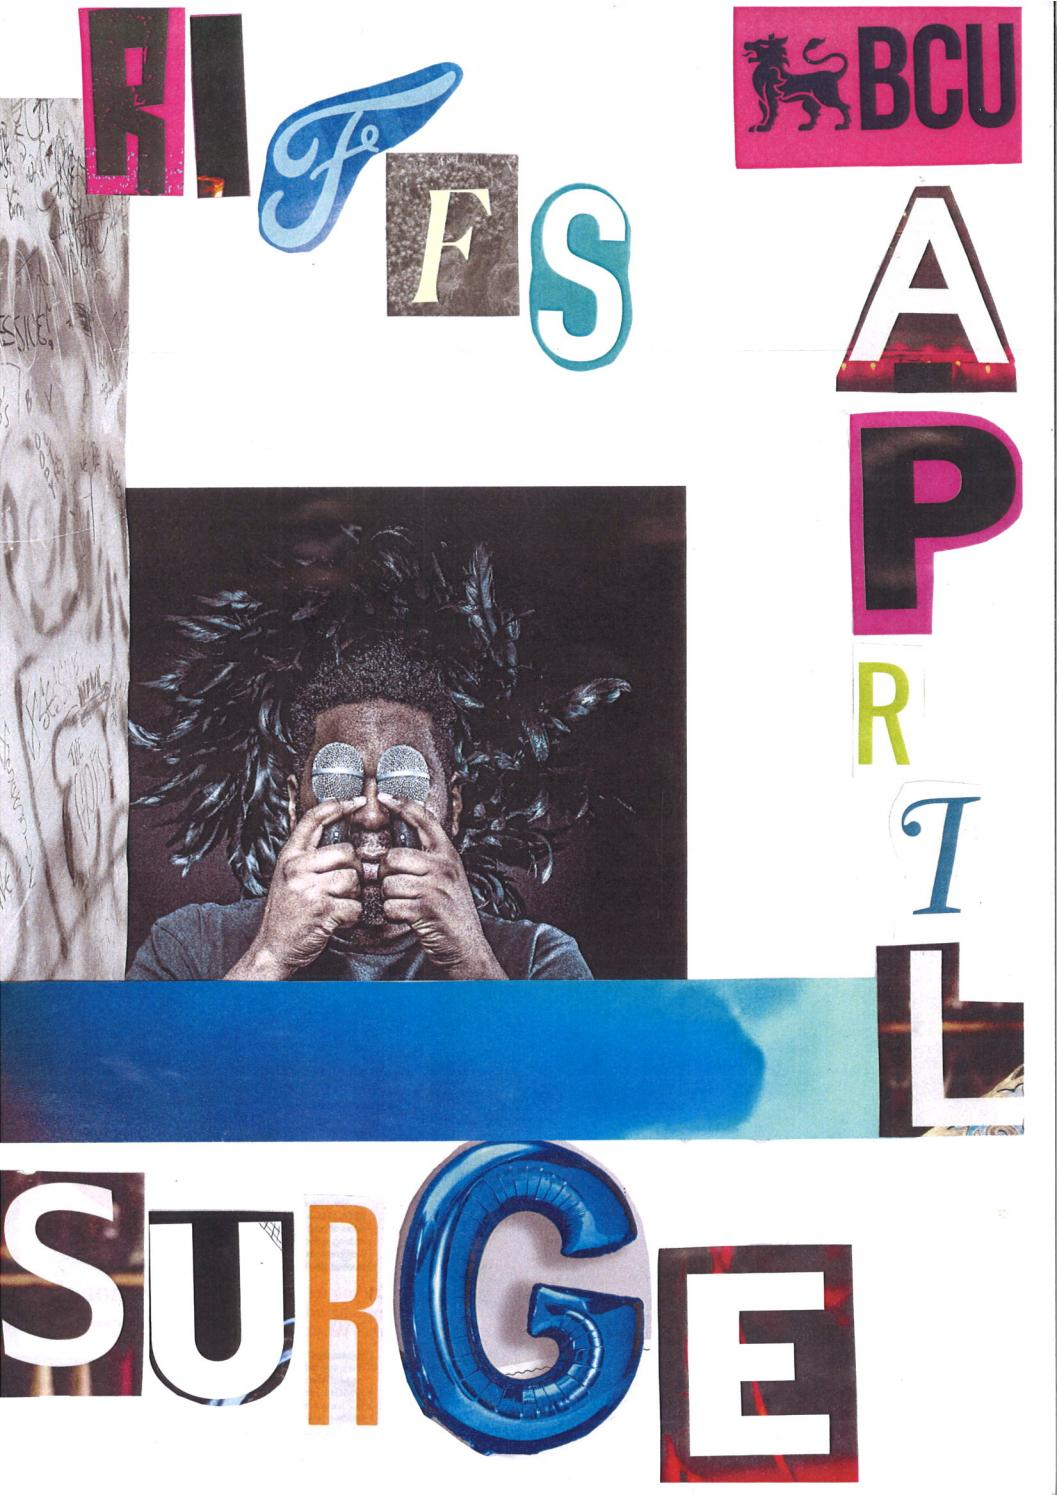 Issuu | Riffs Special Edition - Surge in Spring II - April 2018